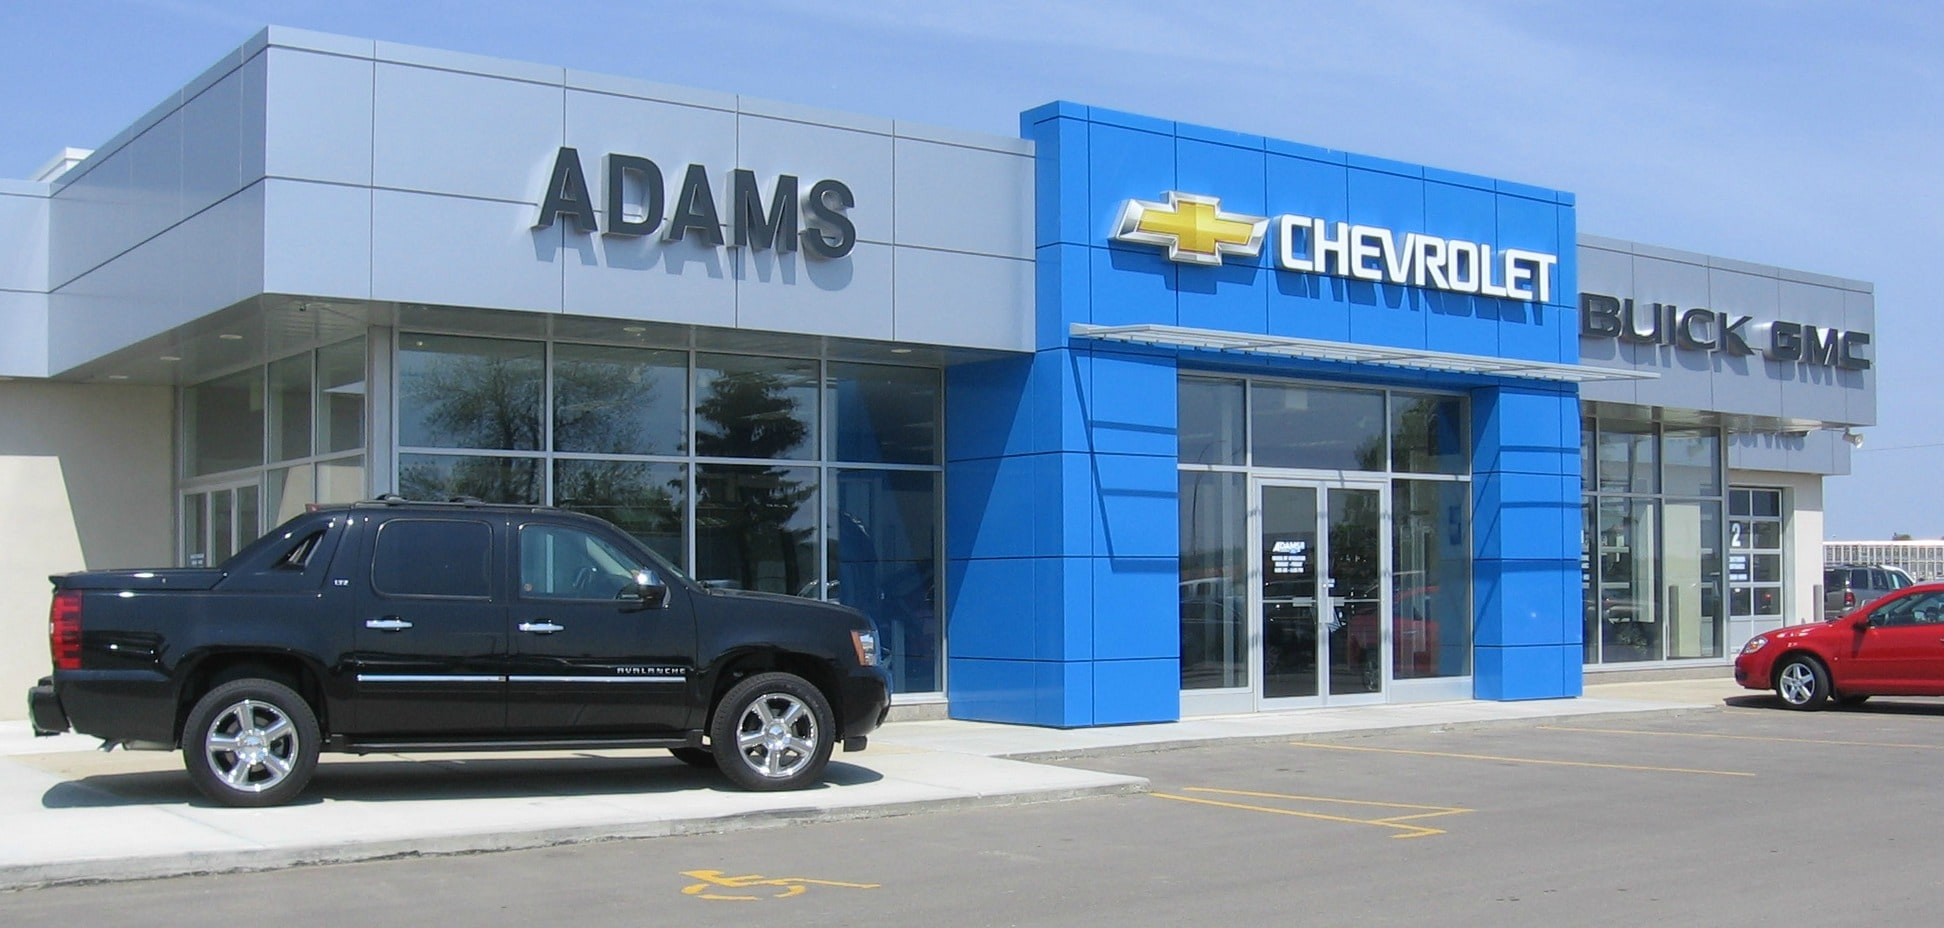 Chevrolet buick gmc dealer in ponoka adams chevrolet for Discount motors jacksboro hwy inventory